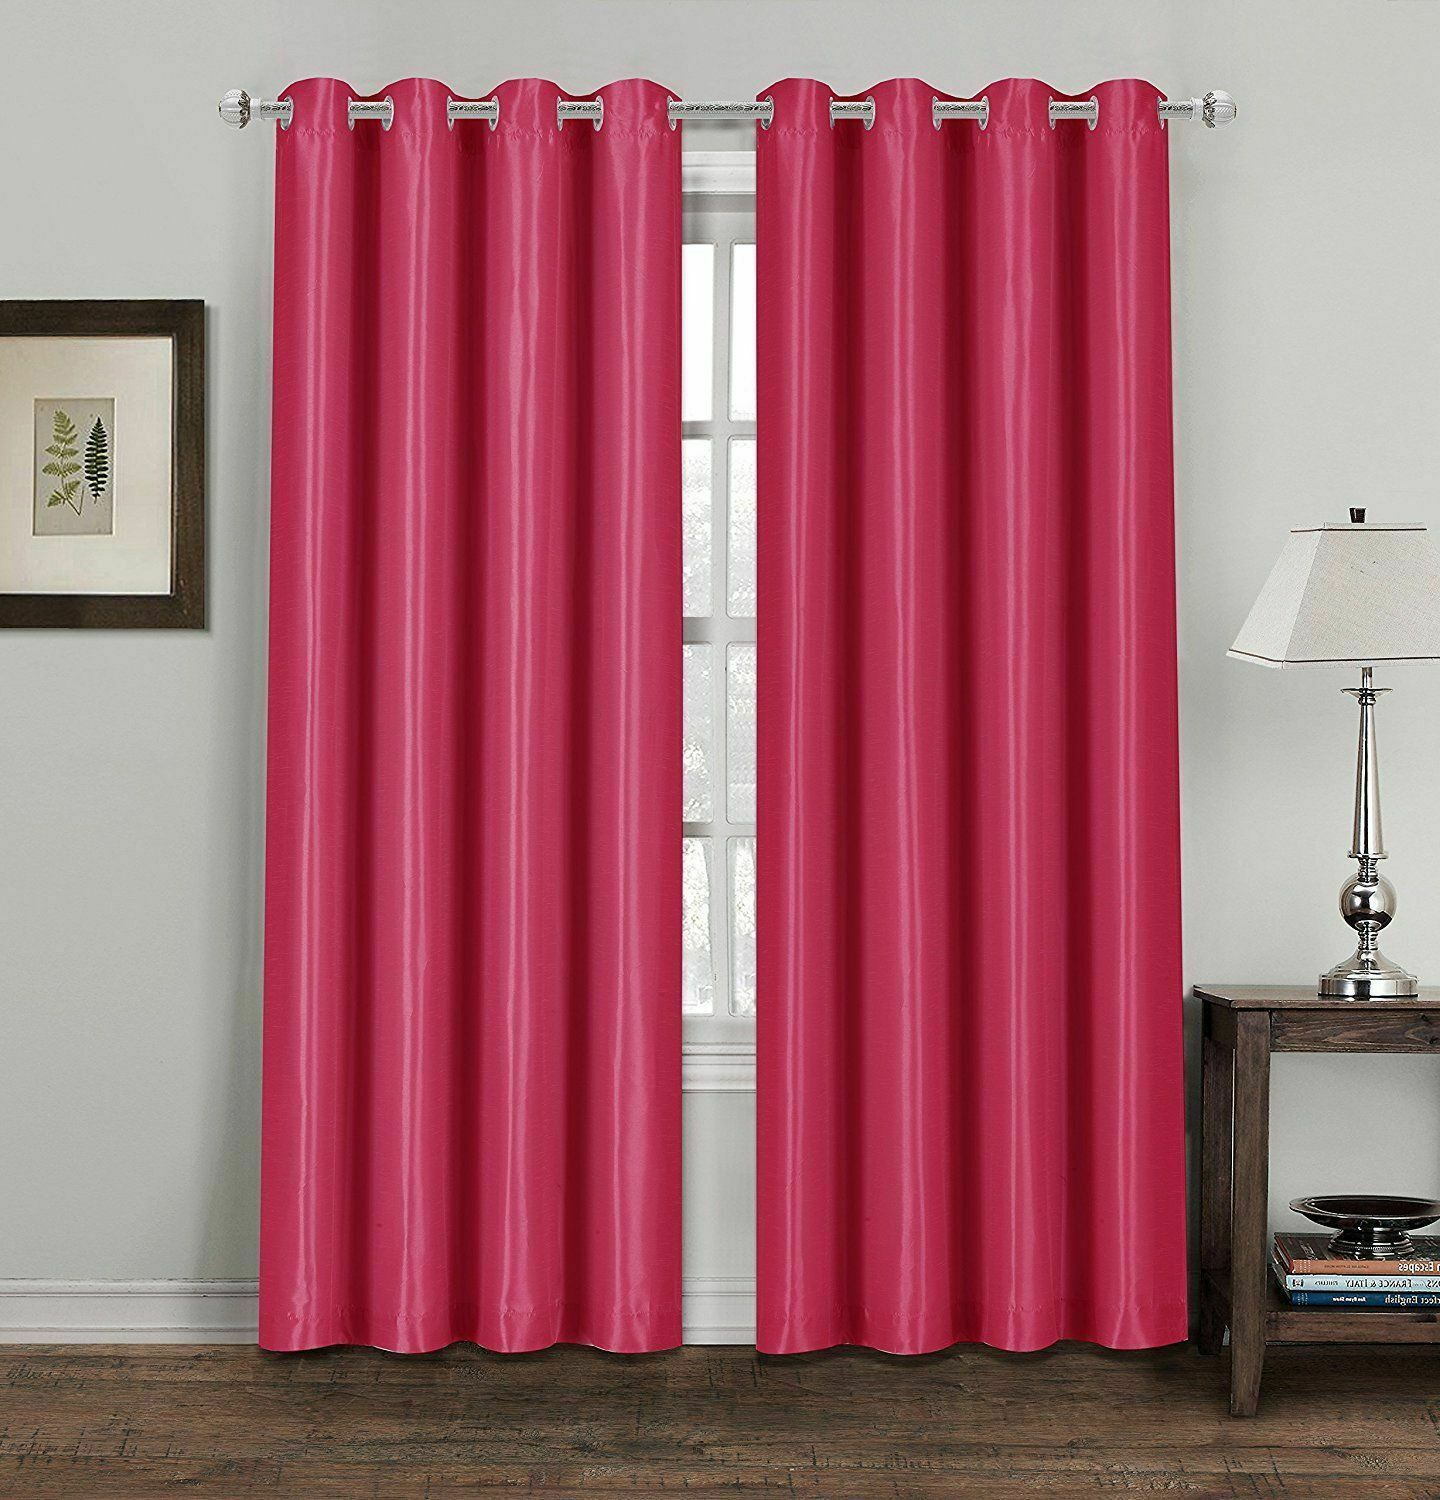 CREAM THERMAL BLACKOUT CURTAINS READY MADE EYELET RING TOP LINED CURTAINS